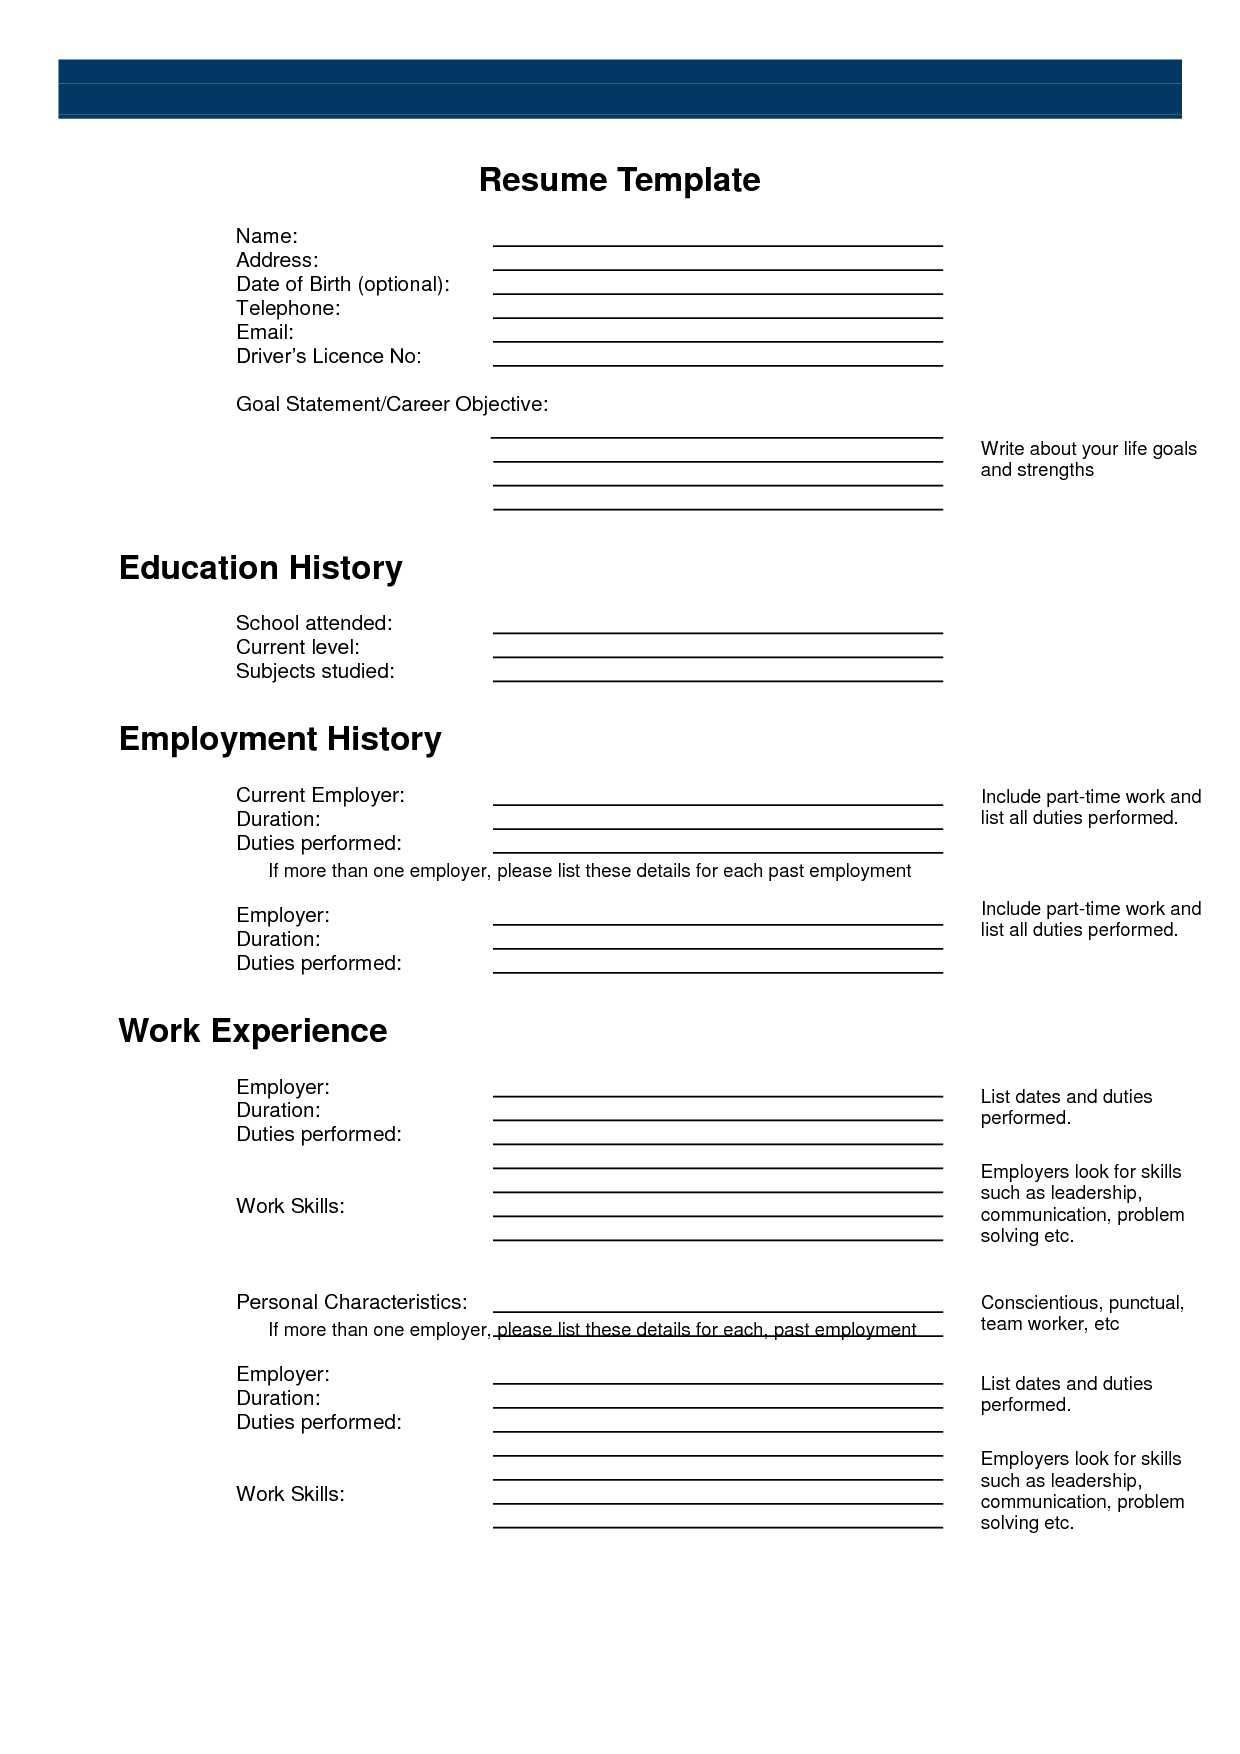 Pin by Anishfeds on Resumes | Free resume builder, Free printable